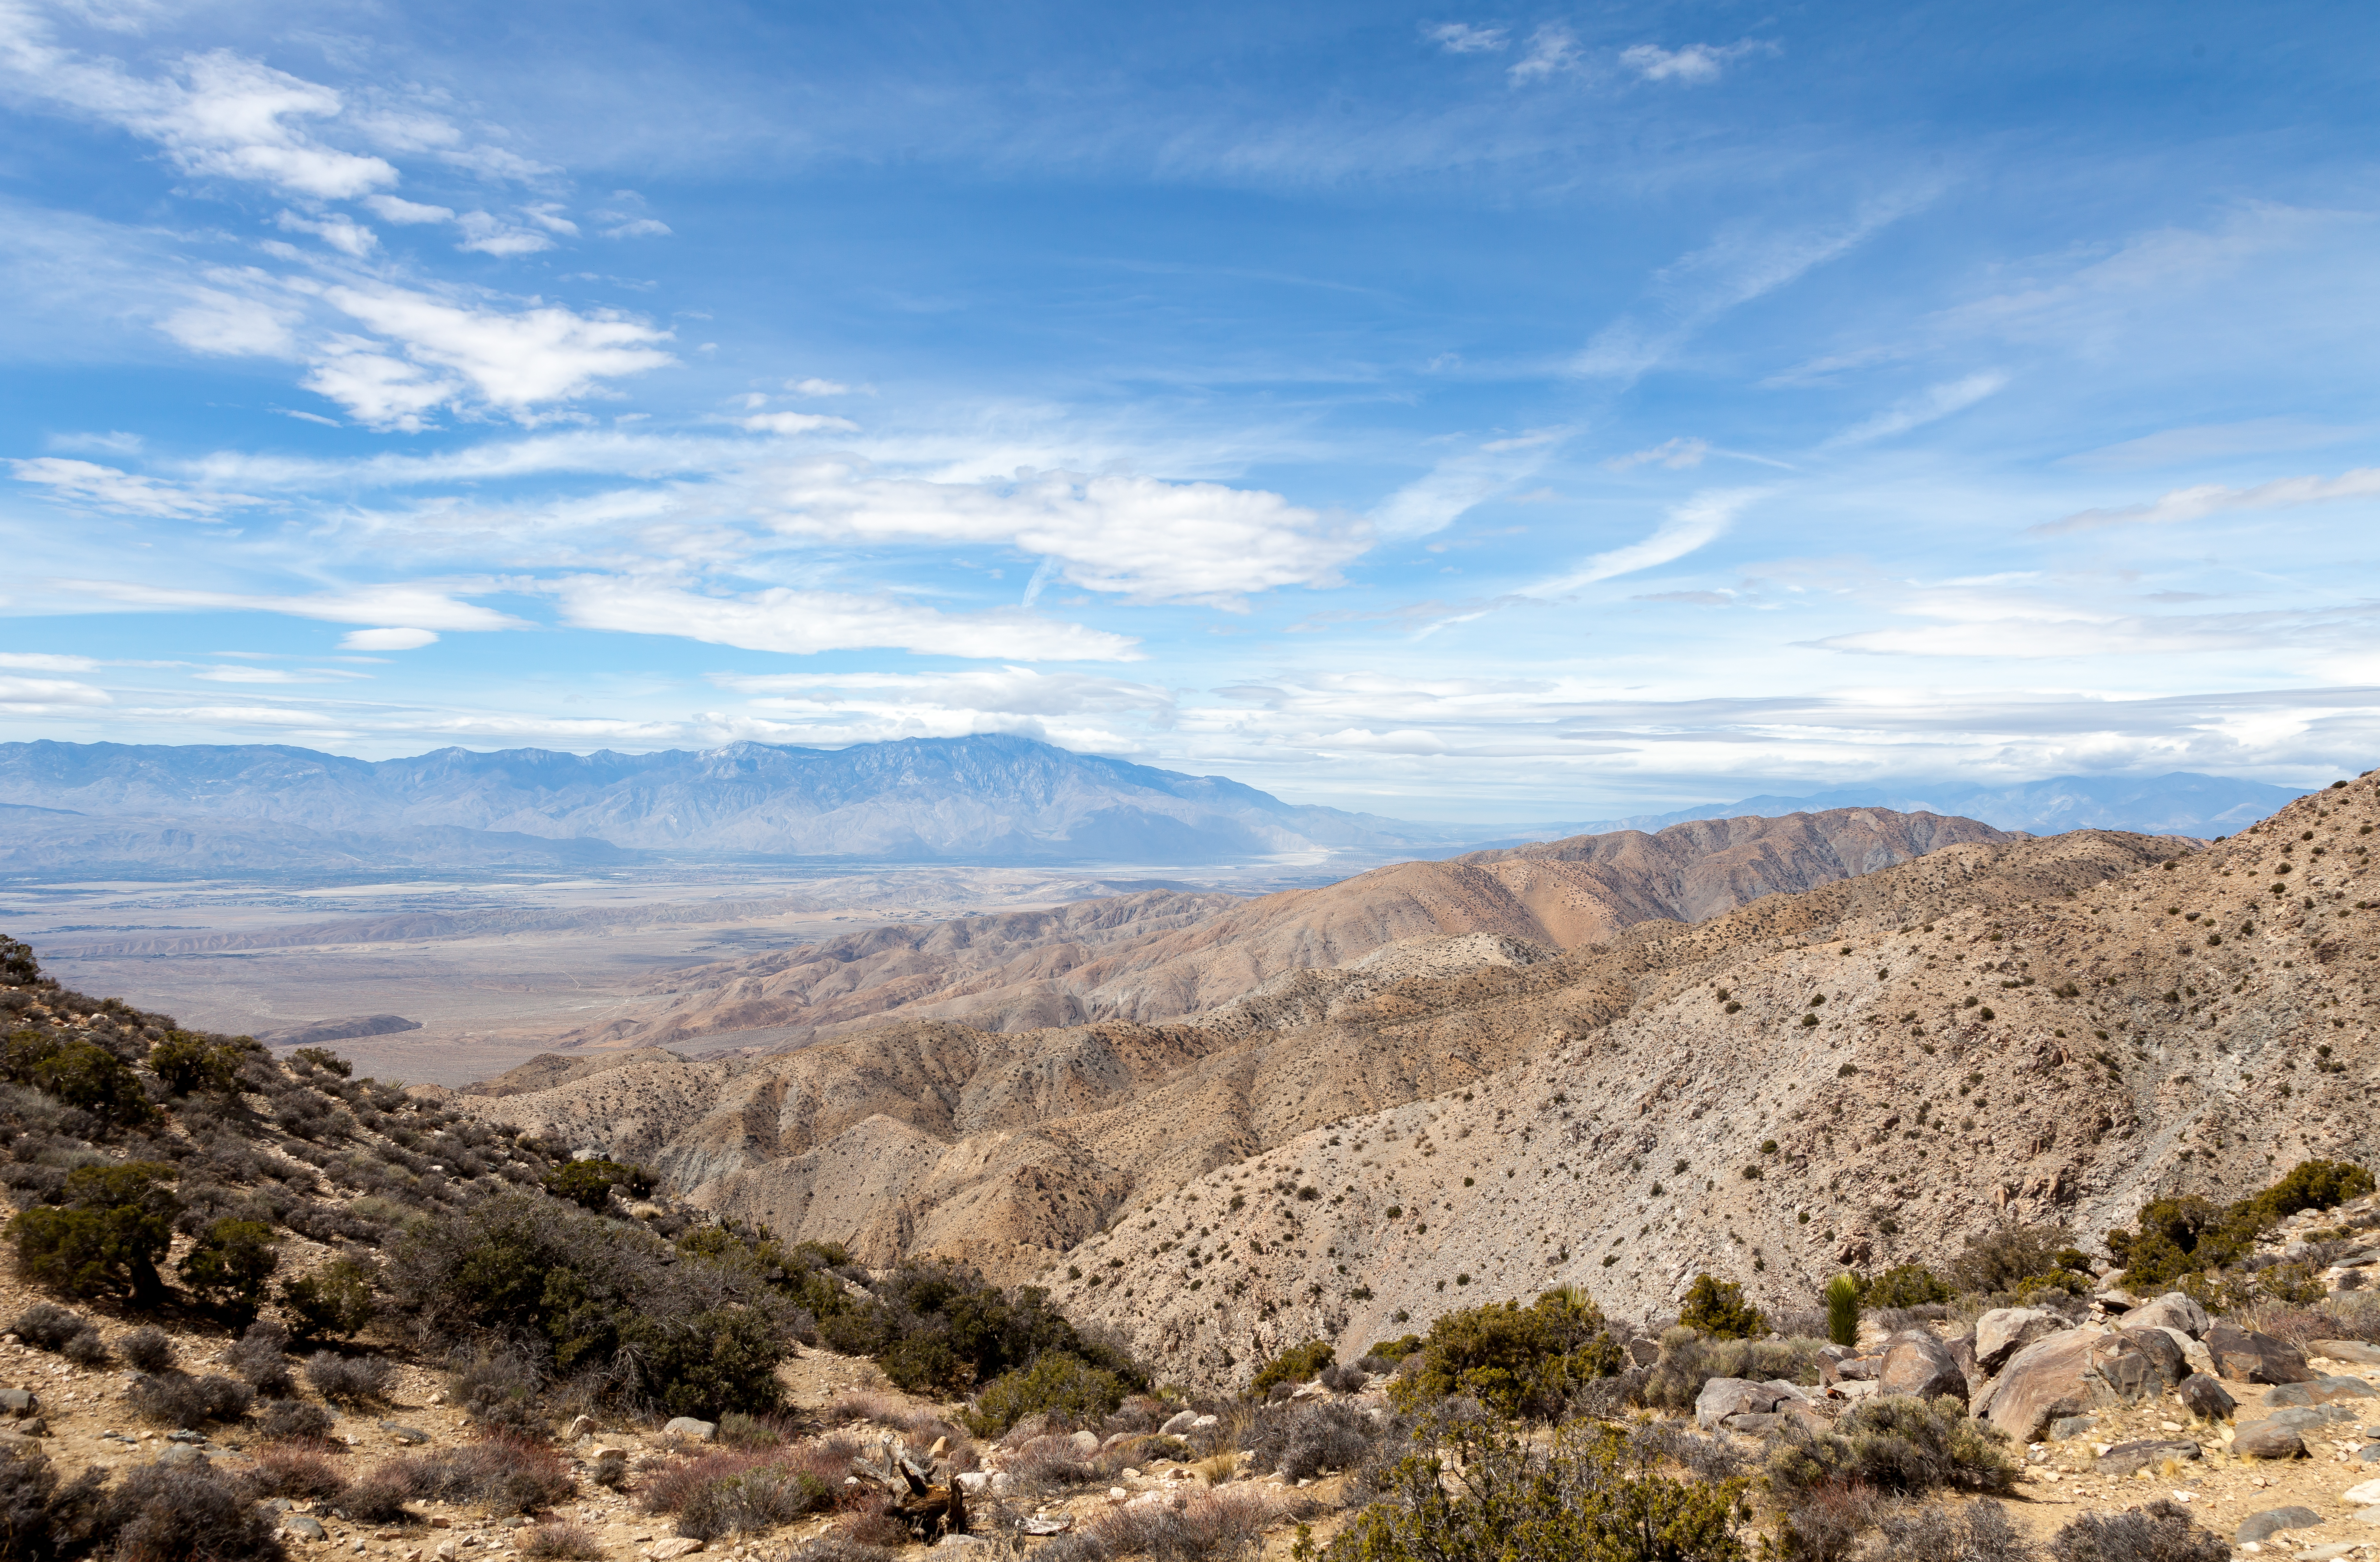 a view from a vista in Joshua Tree National Park